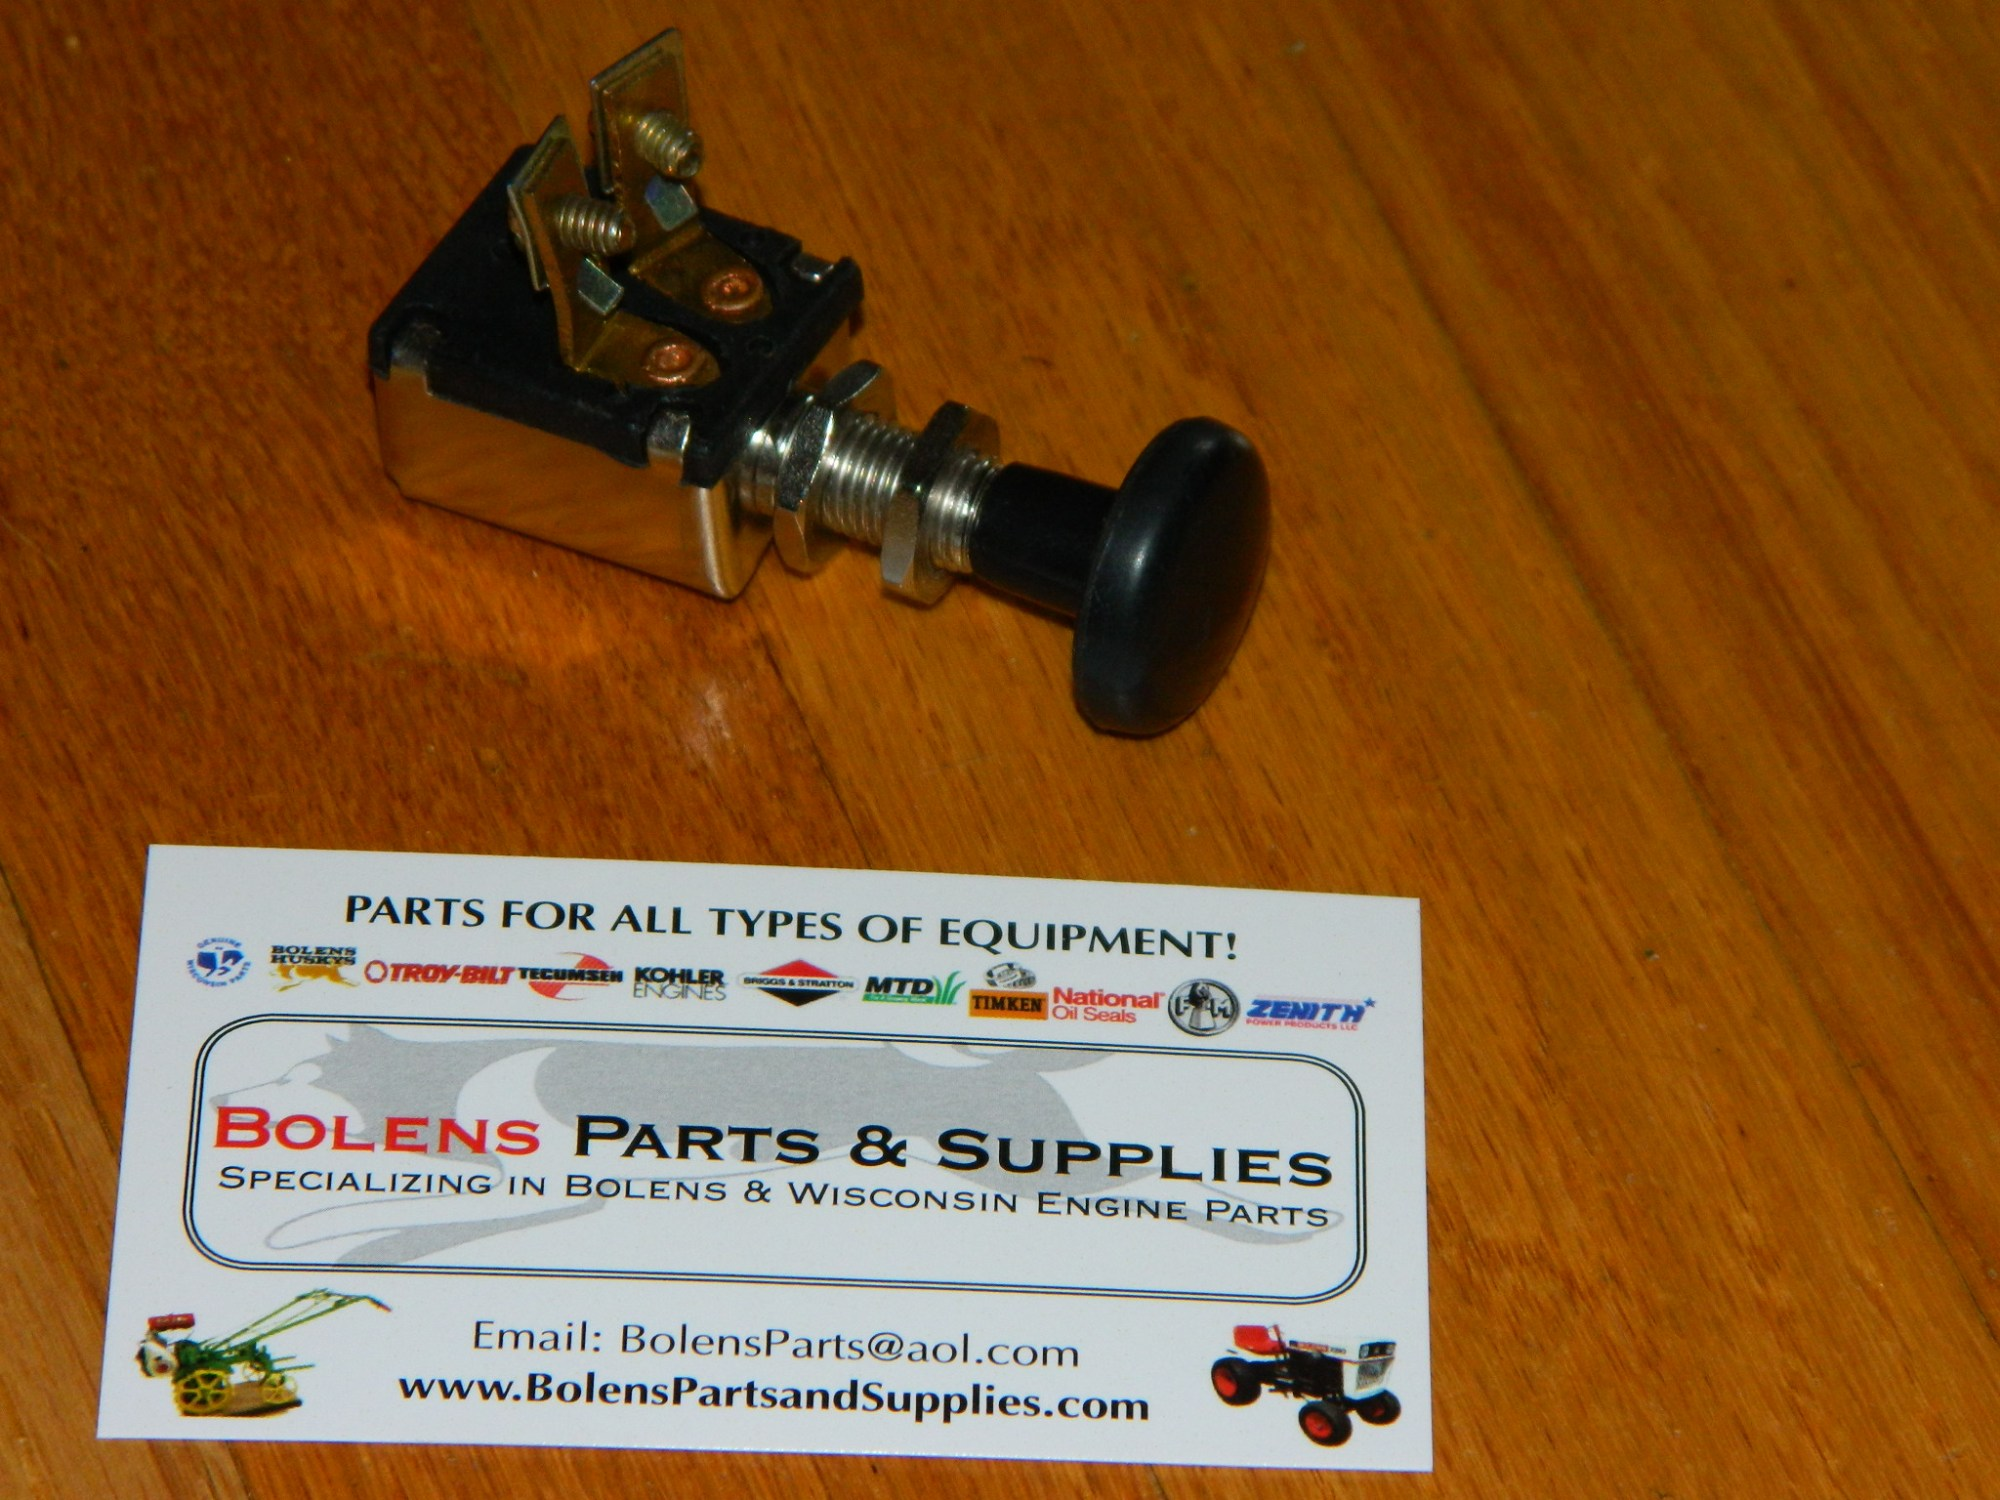 hight resolution of bolens parts ignition switches stop switches and lighting sears suburban garden tractor push pull light switch new bolens tubeframe light switch